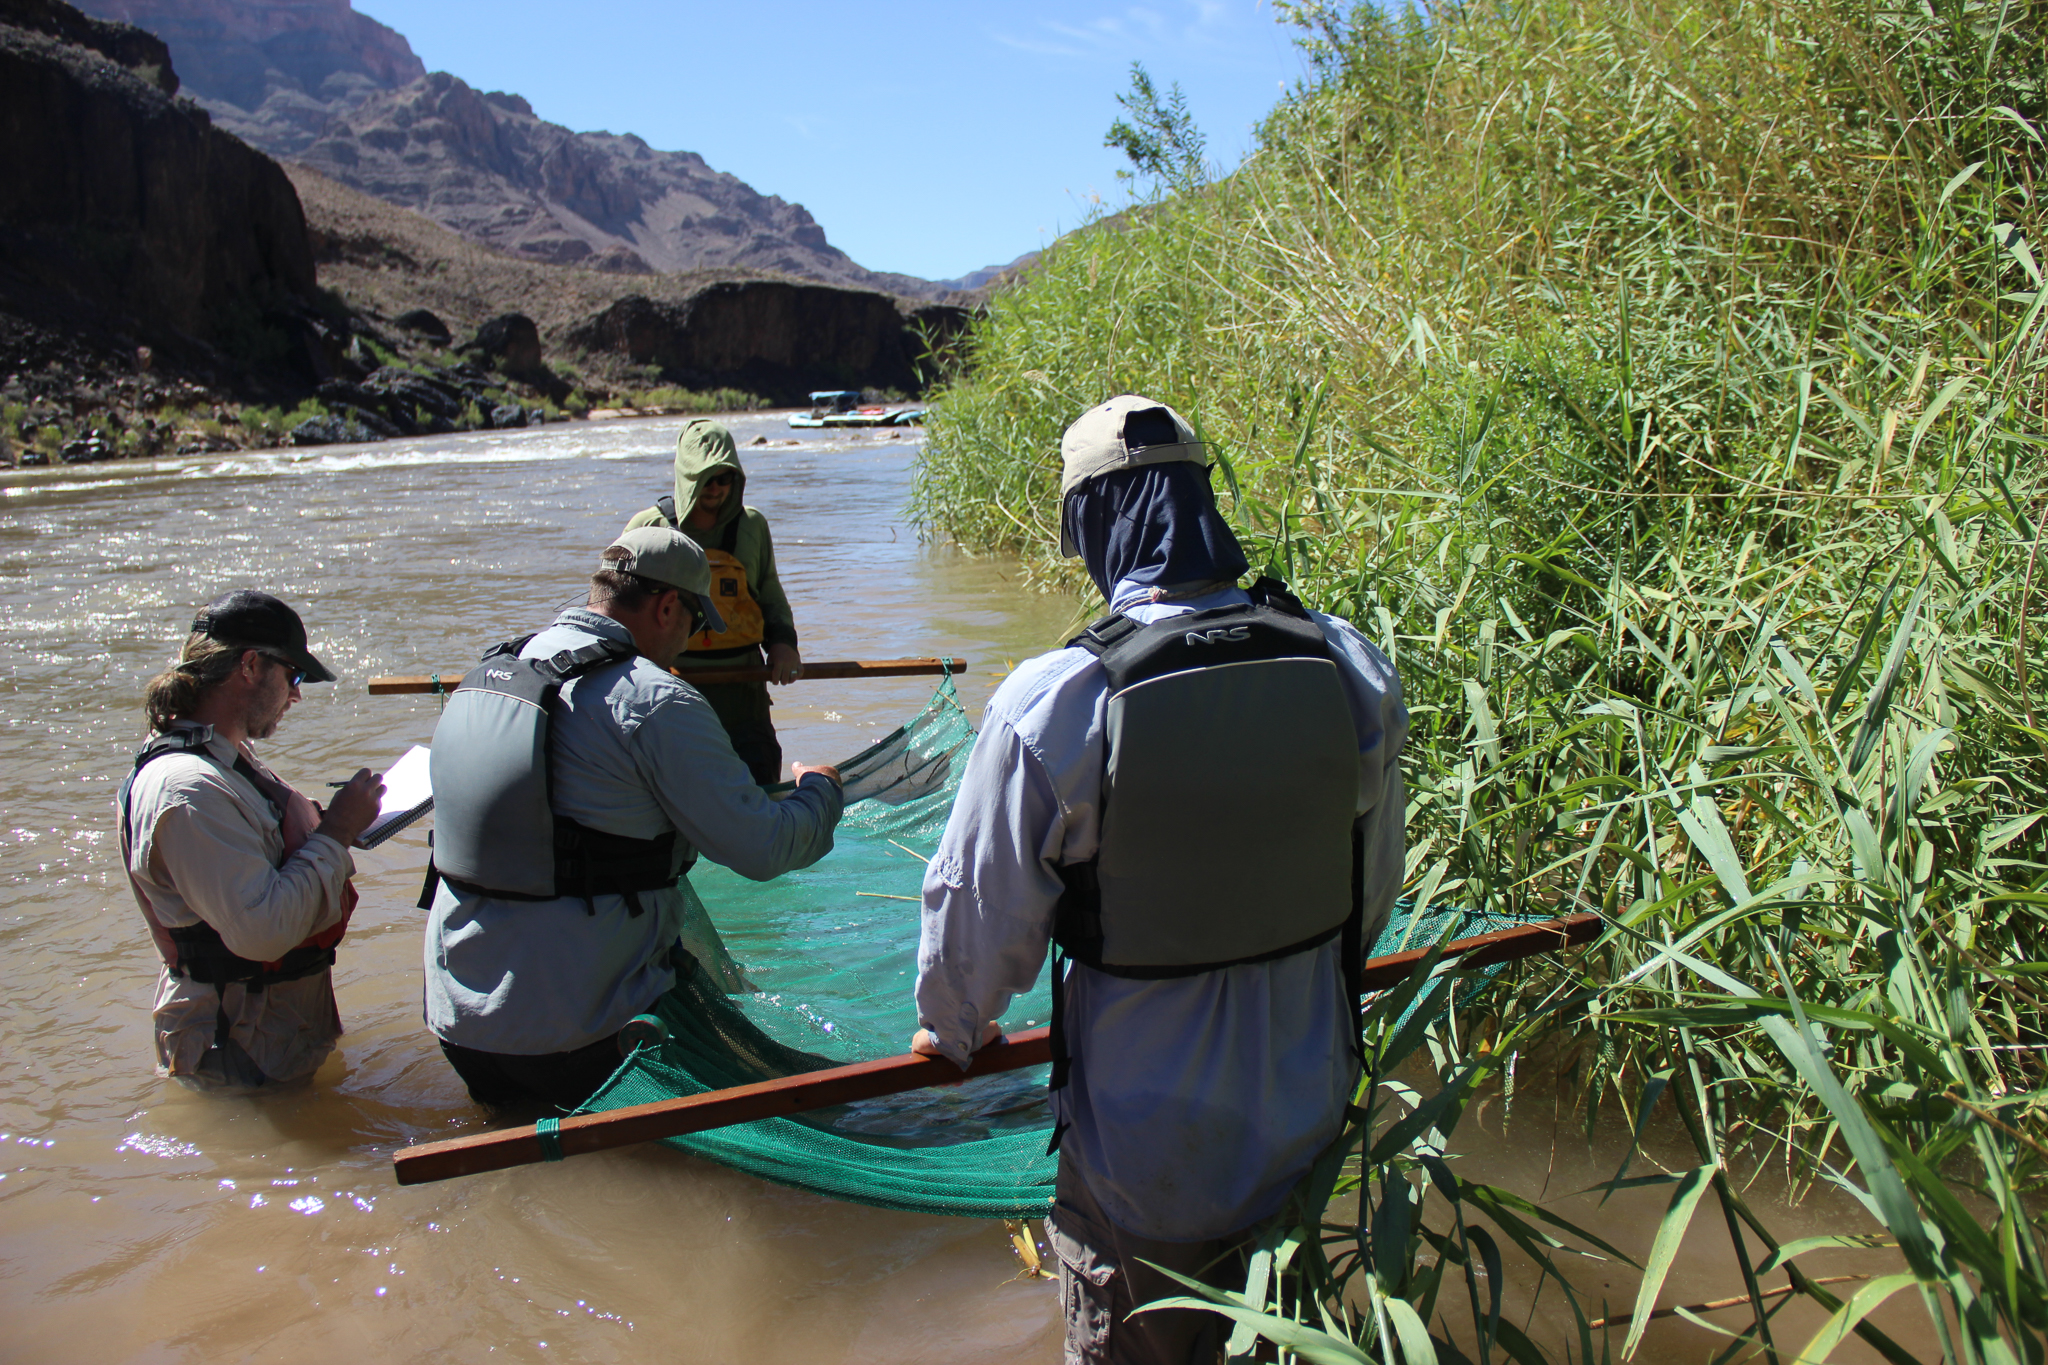 The larval sucker surveying team checks the seine after netting along a fringe of vegetation in the lower Grand Canyon.